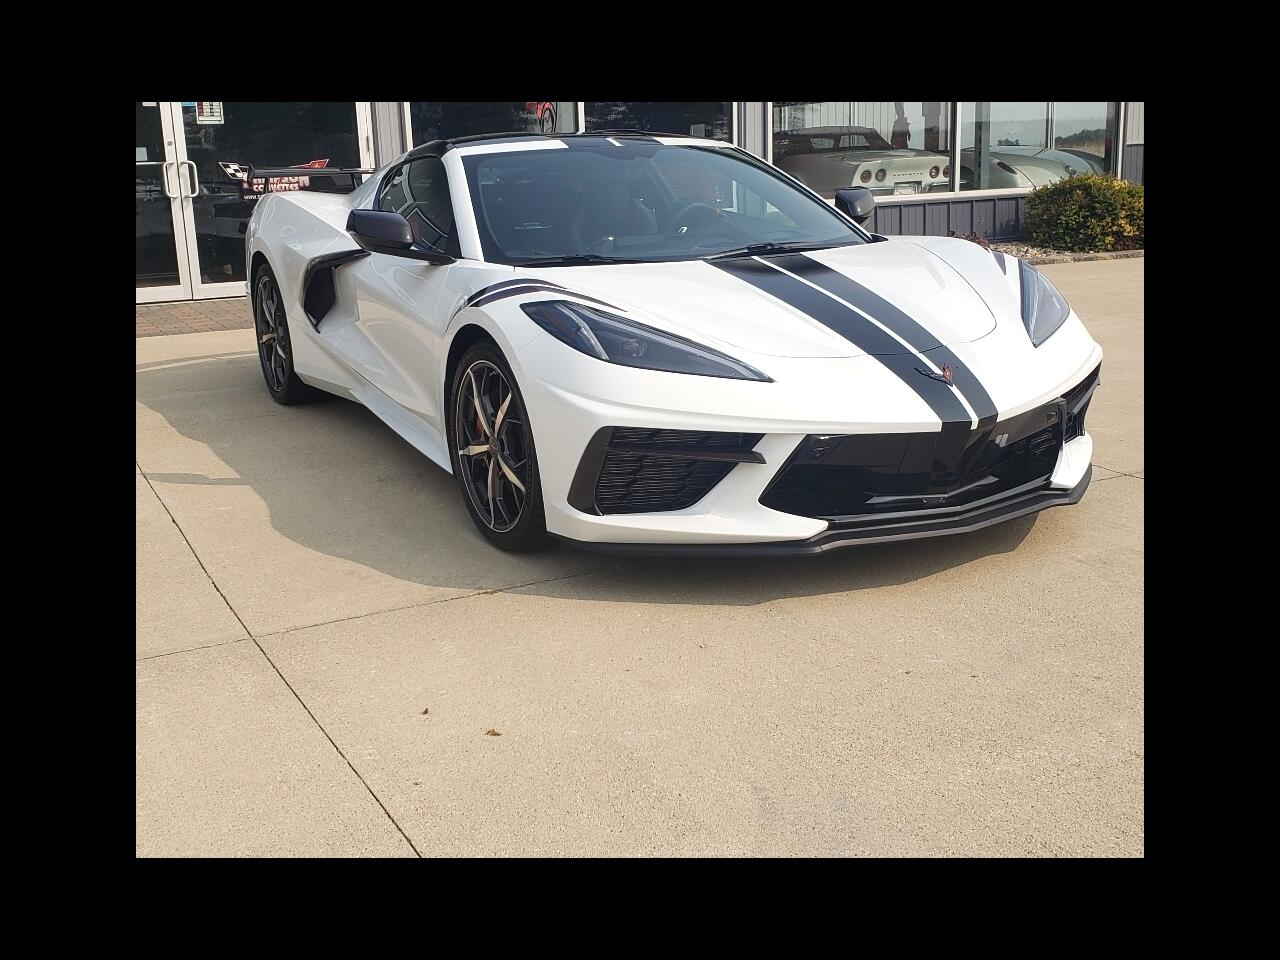 Chevrolet Corvette 2dr Stingray Cpe w/3LT 2020